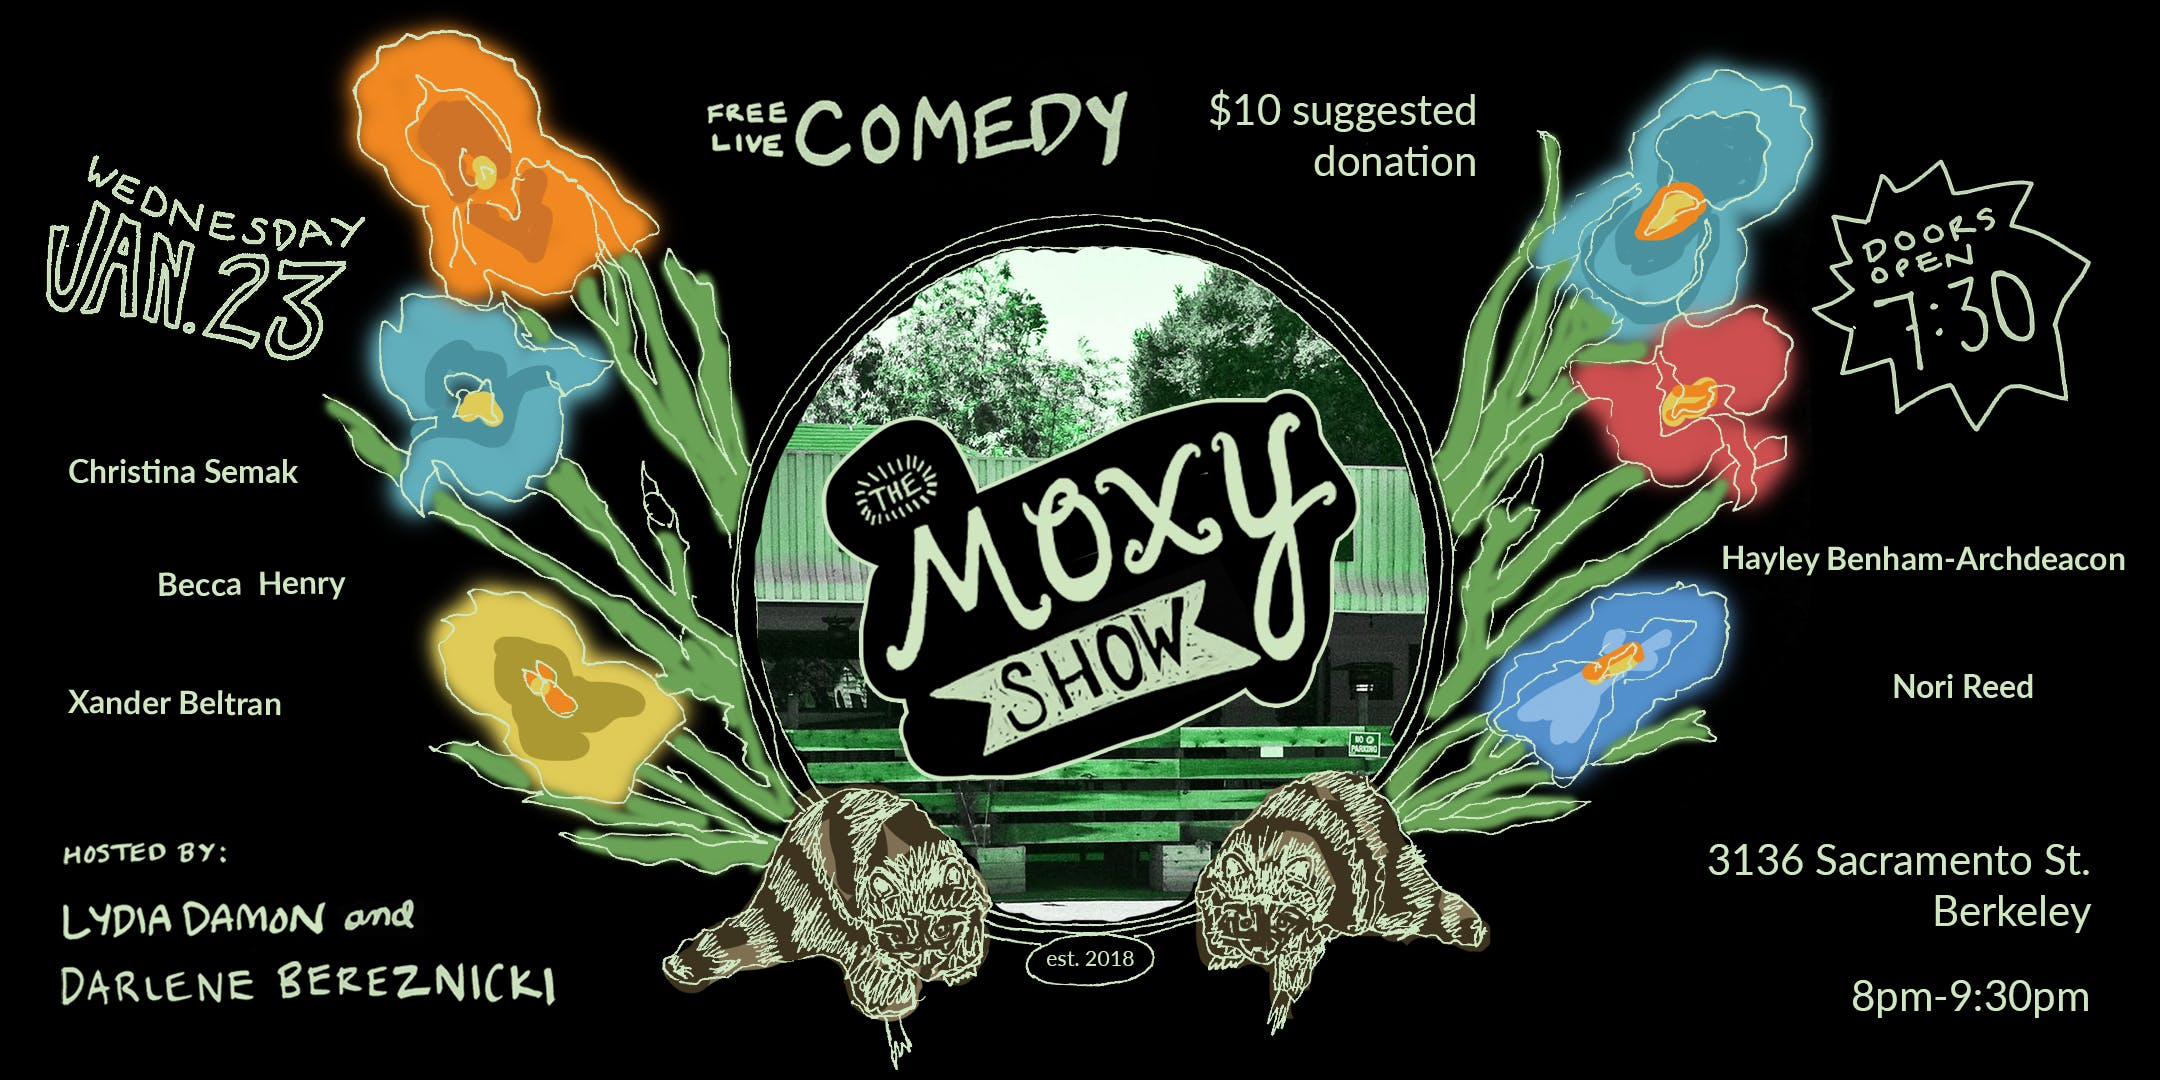 The Moxy Show: Free Live Comedy in Berkeley